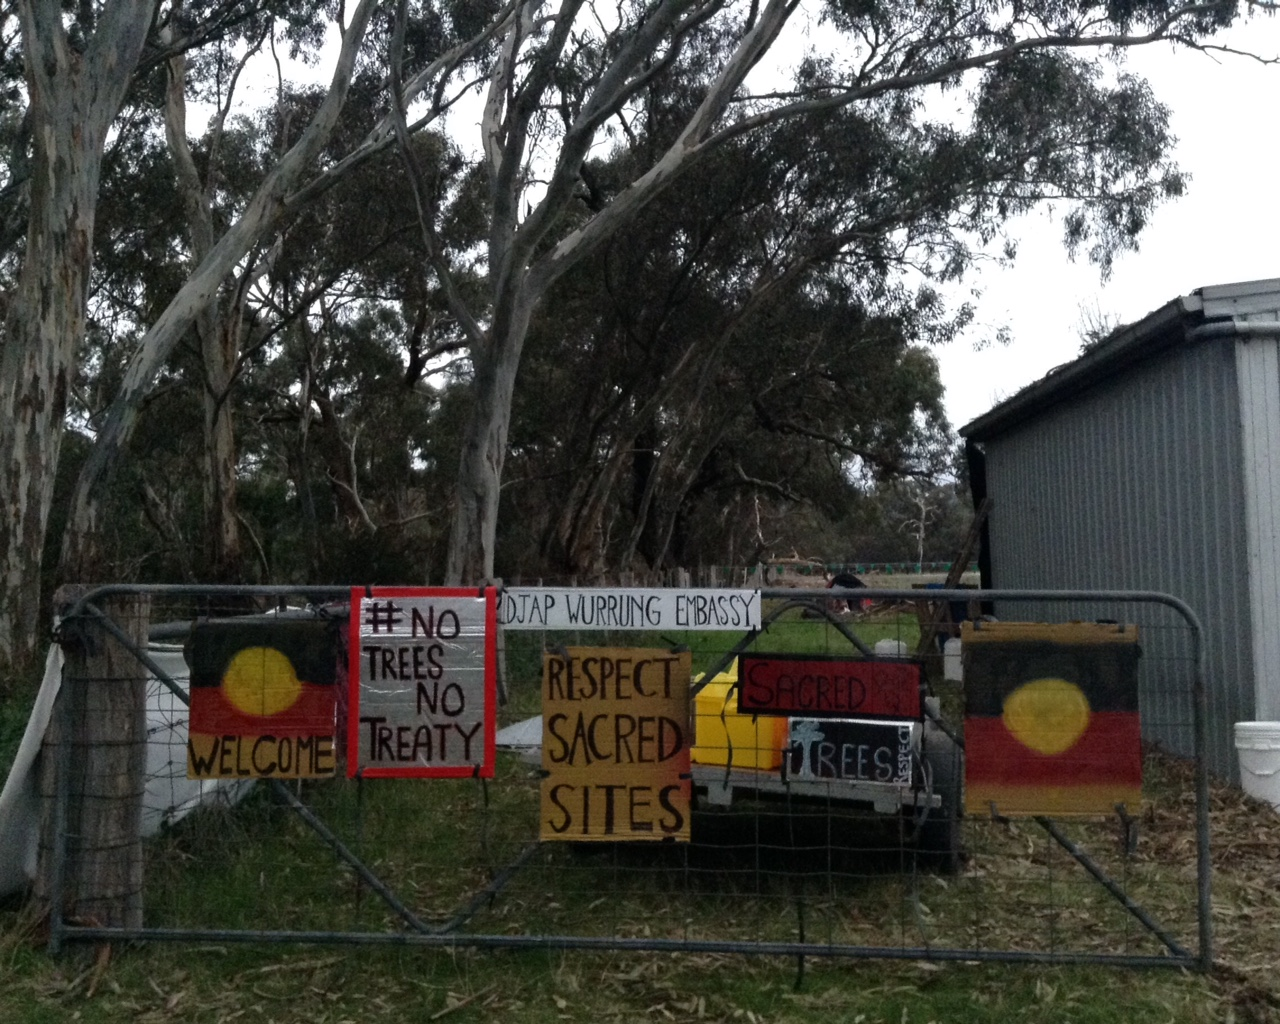 Gate at front of Djabwurrung embassy, covered in protest signs